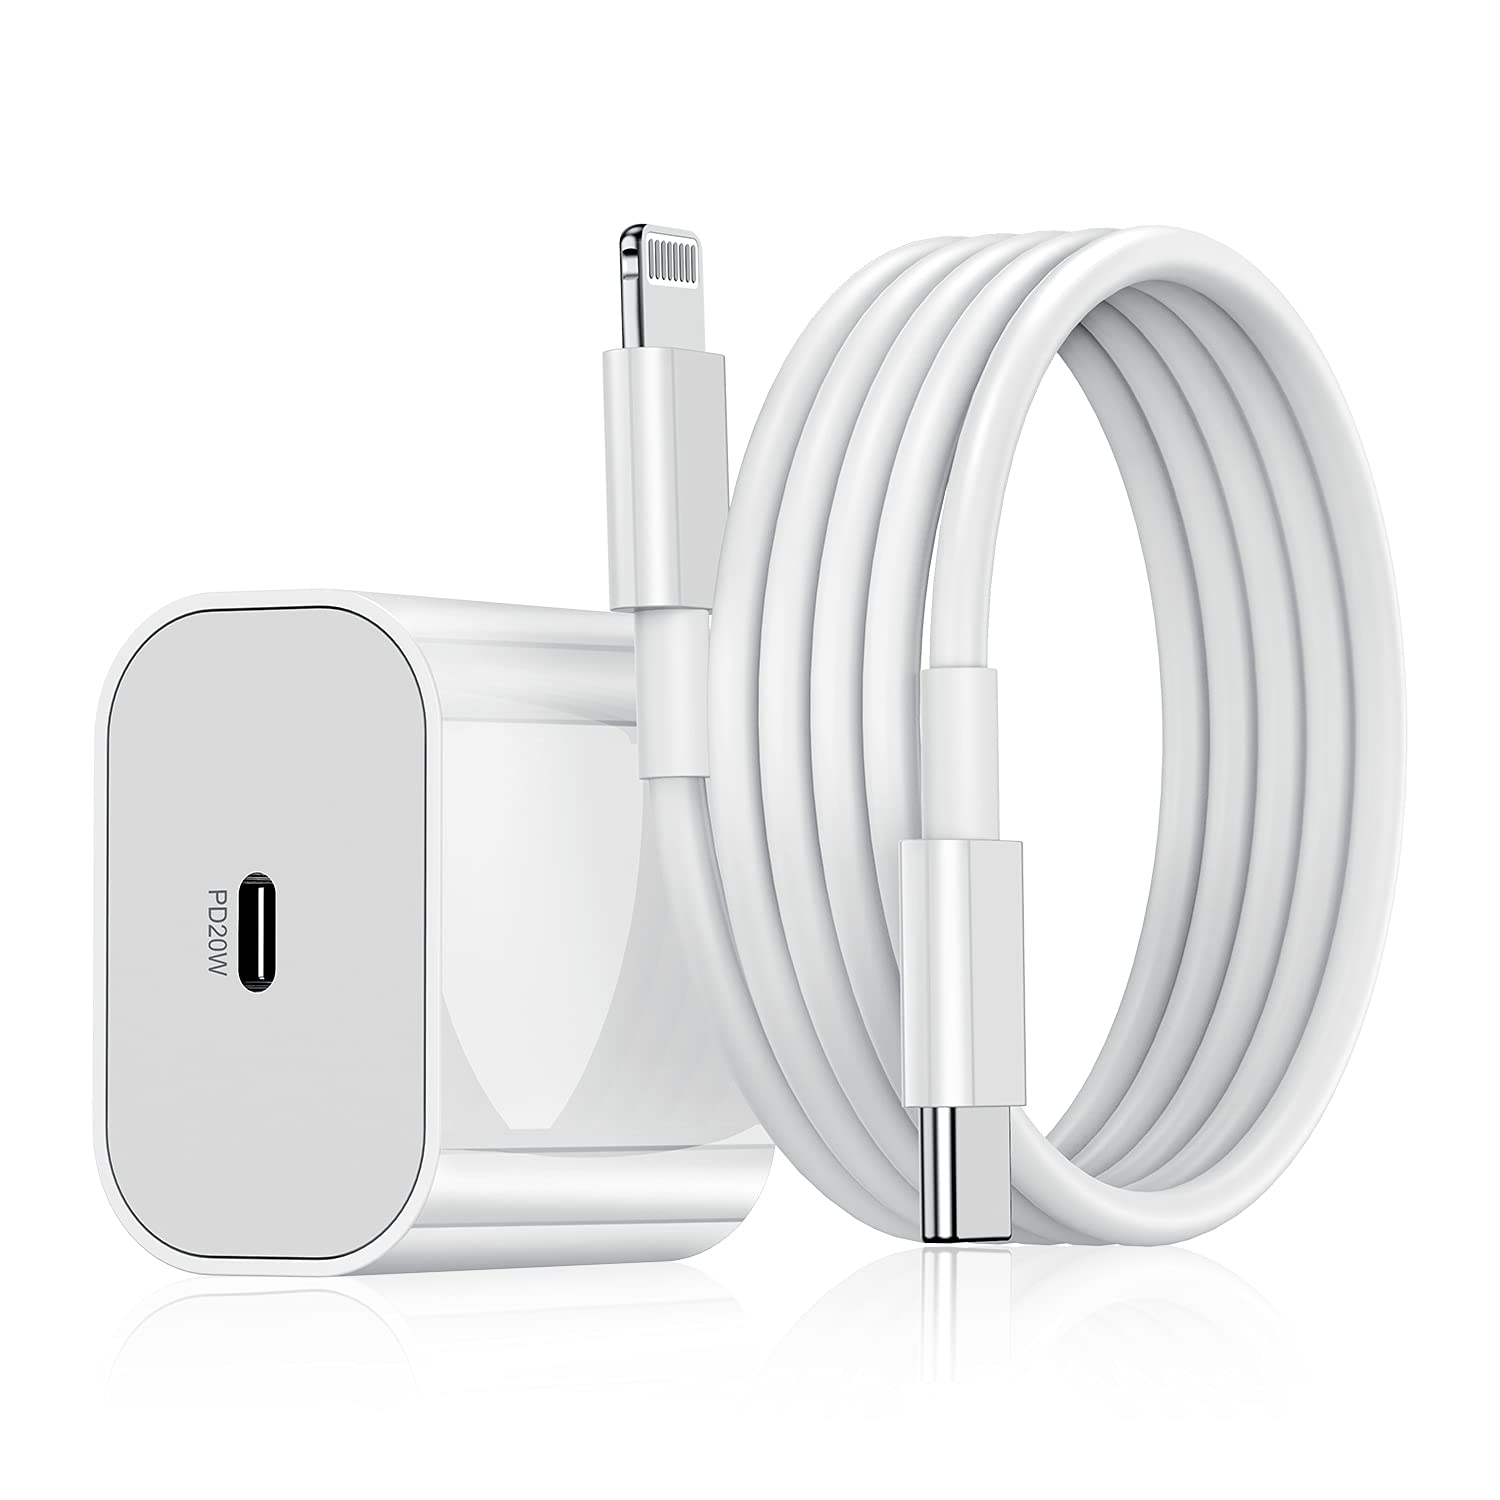 iPhone Fast Charger, [ Apple MFi Certified ] 20W PD Wall Charger Block with 6ft USB C to Lightning Cable, USB-C Power Adapter for Apple iPhone 12/12 Mini/12 Pro/12 Pro Max/11, iPad Pro,Samsung Galaxy